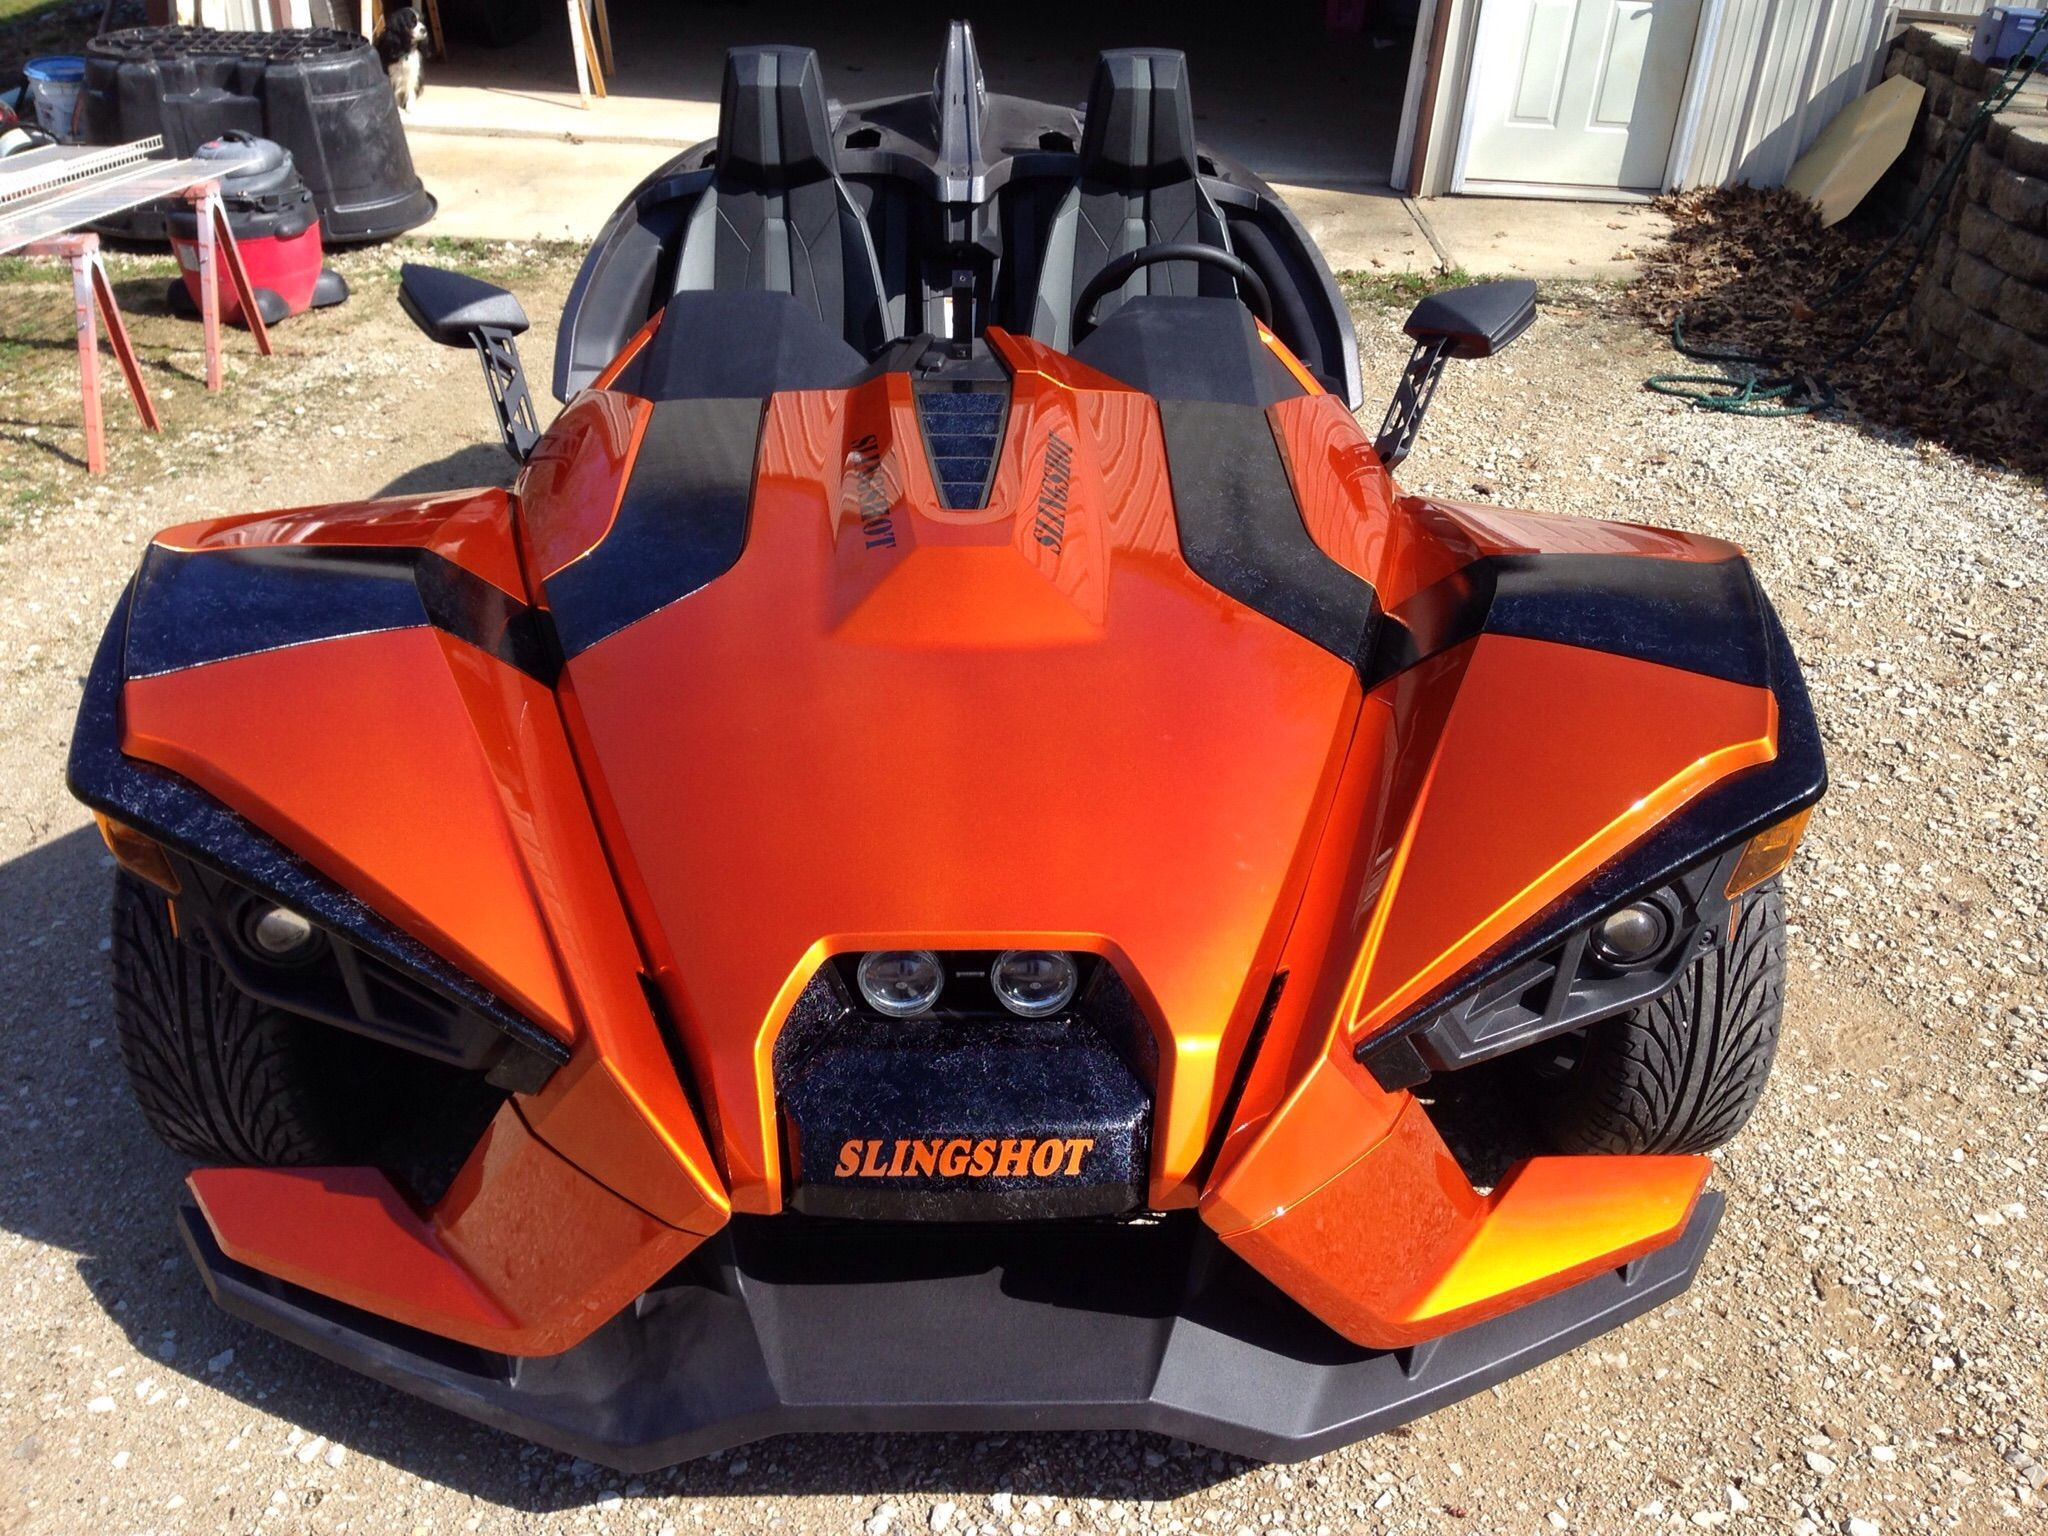 A New Paint Job On The Polaris Slingshot How Sweet Is